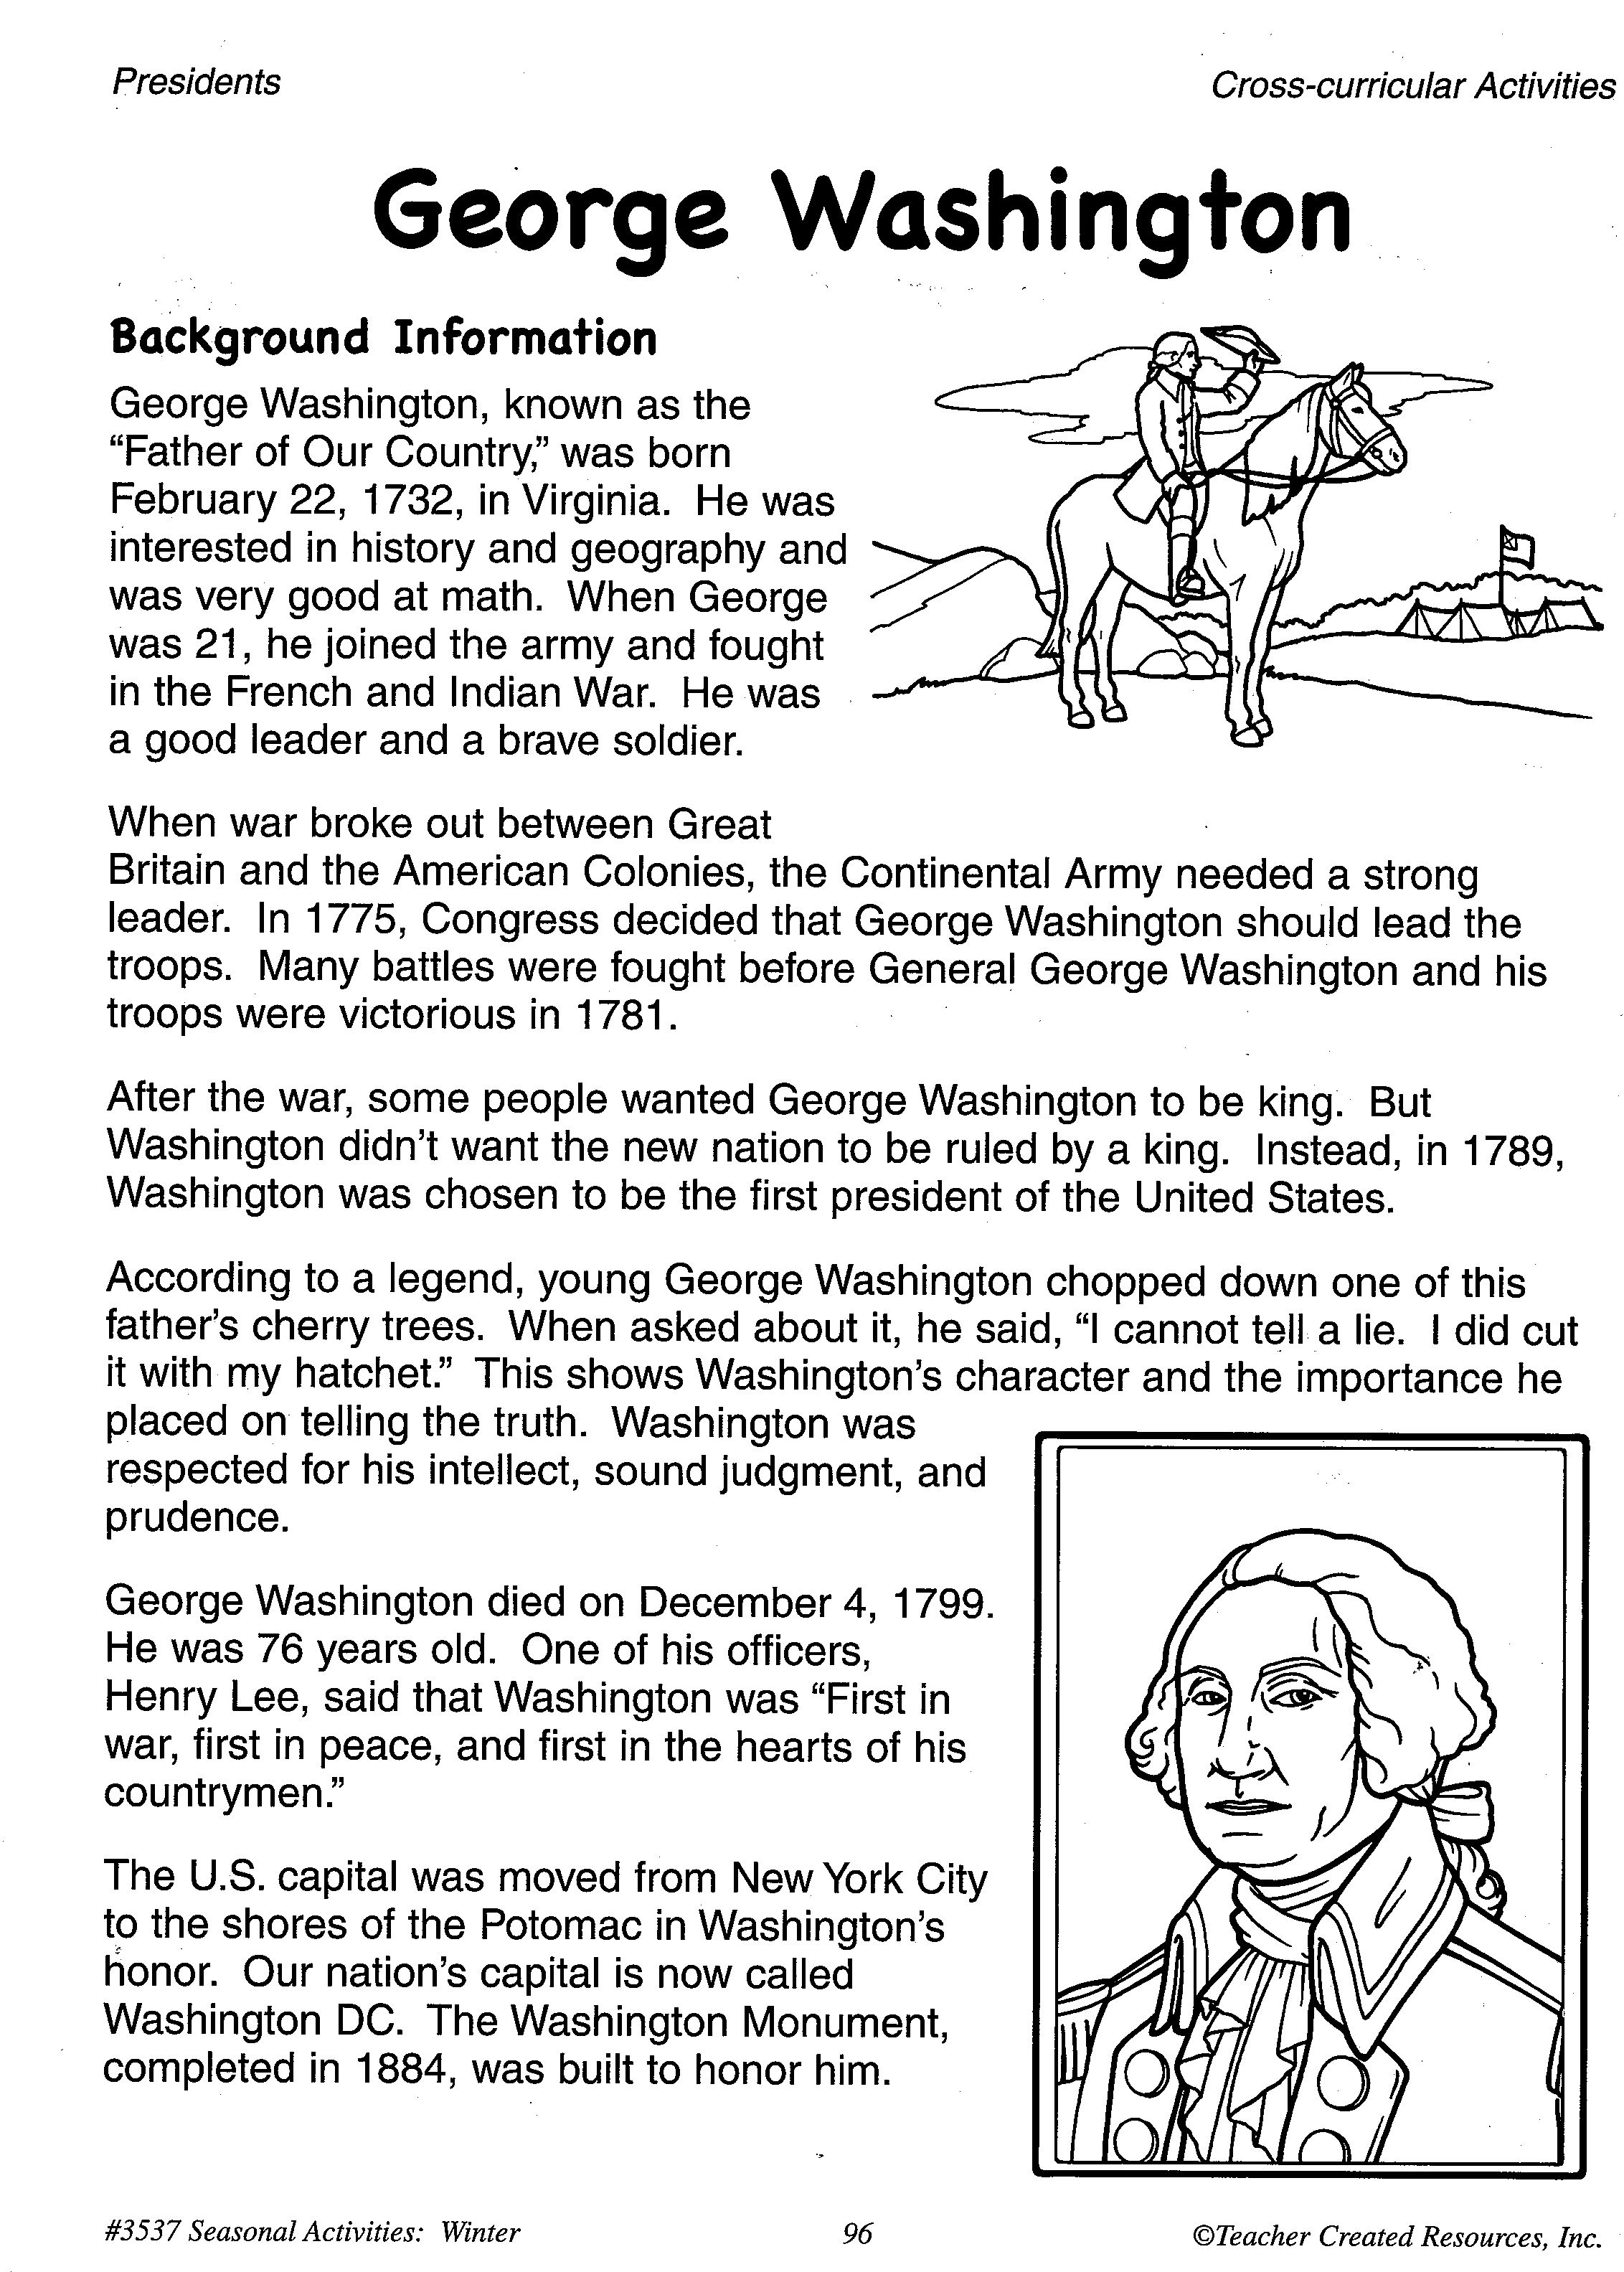 Help Your Students Learn About George Washington With This